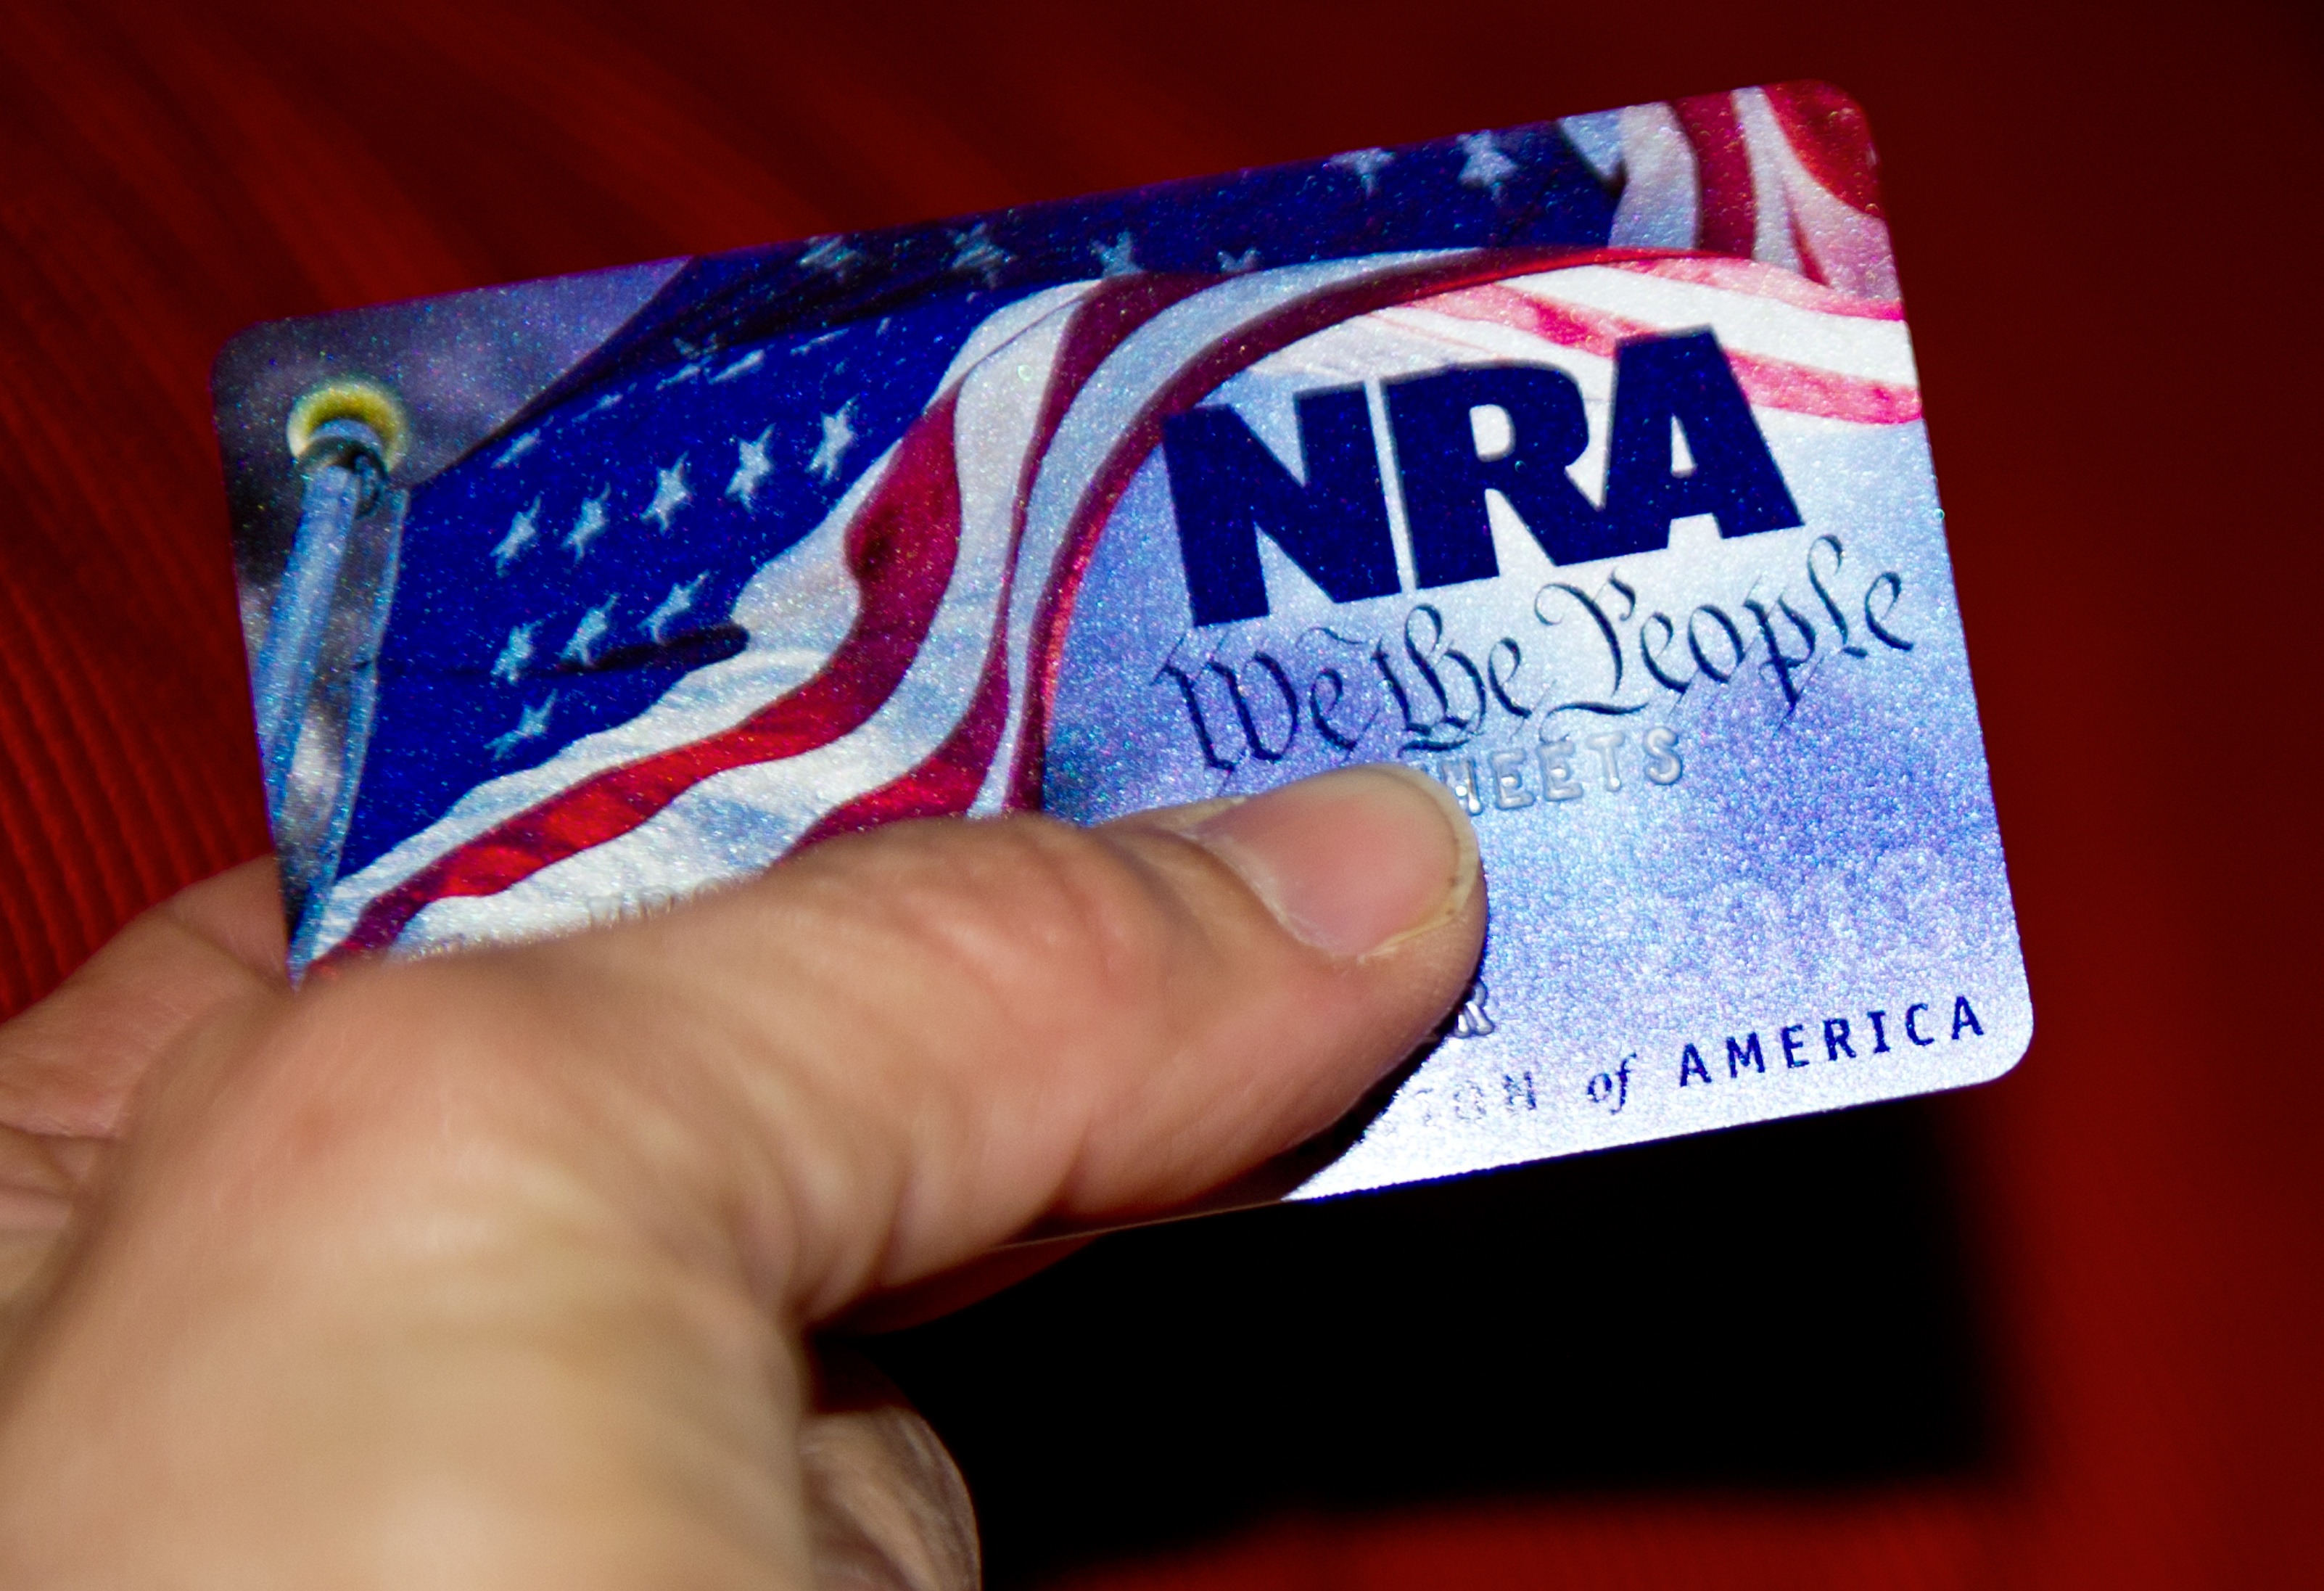 A membership card for the National Rifle Association (NRA) is seen on January 10, 2013 in Manassas, Virginia. (KAREN BLEIER/AFP/Getty Images)